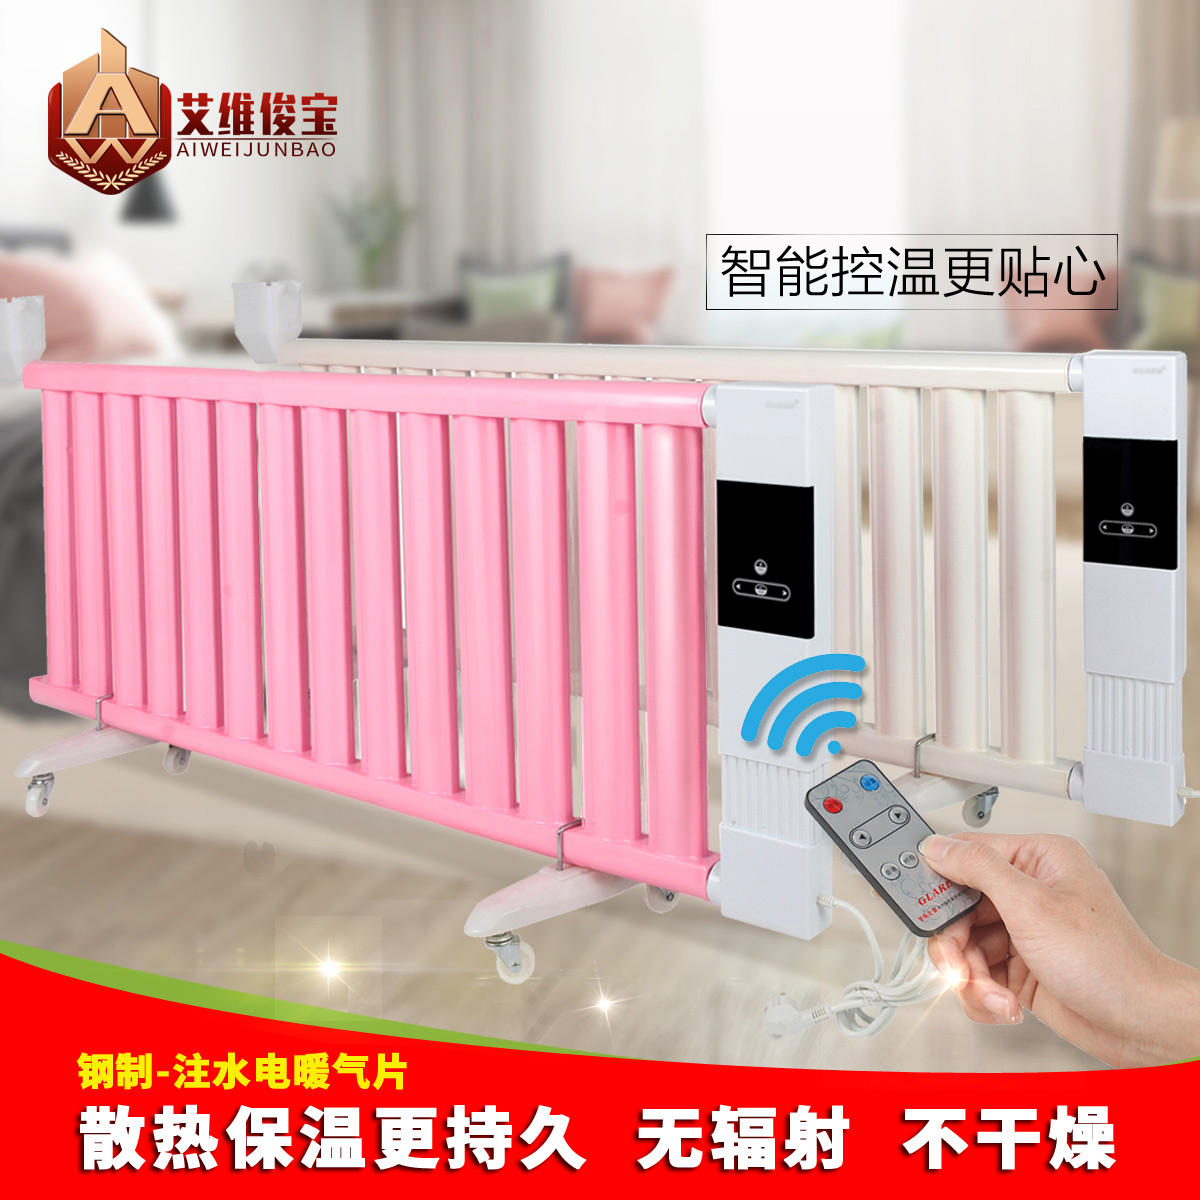 Ivy Electric Heating Hydroelectric Heating Sheet Household Intelligent Heater Water Infusion Intelligent Vertical Heater Lz